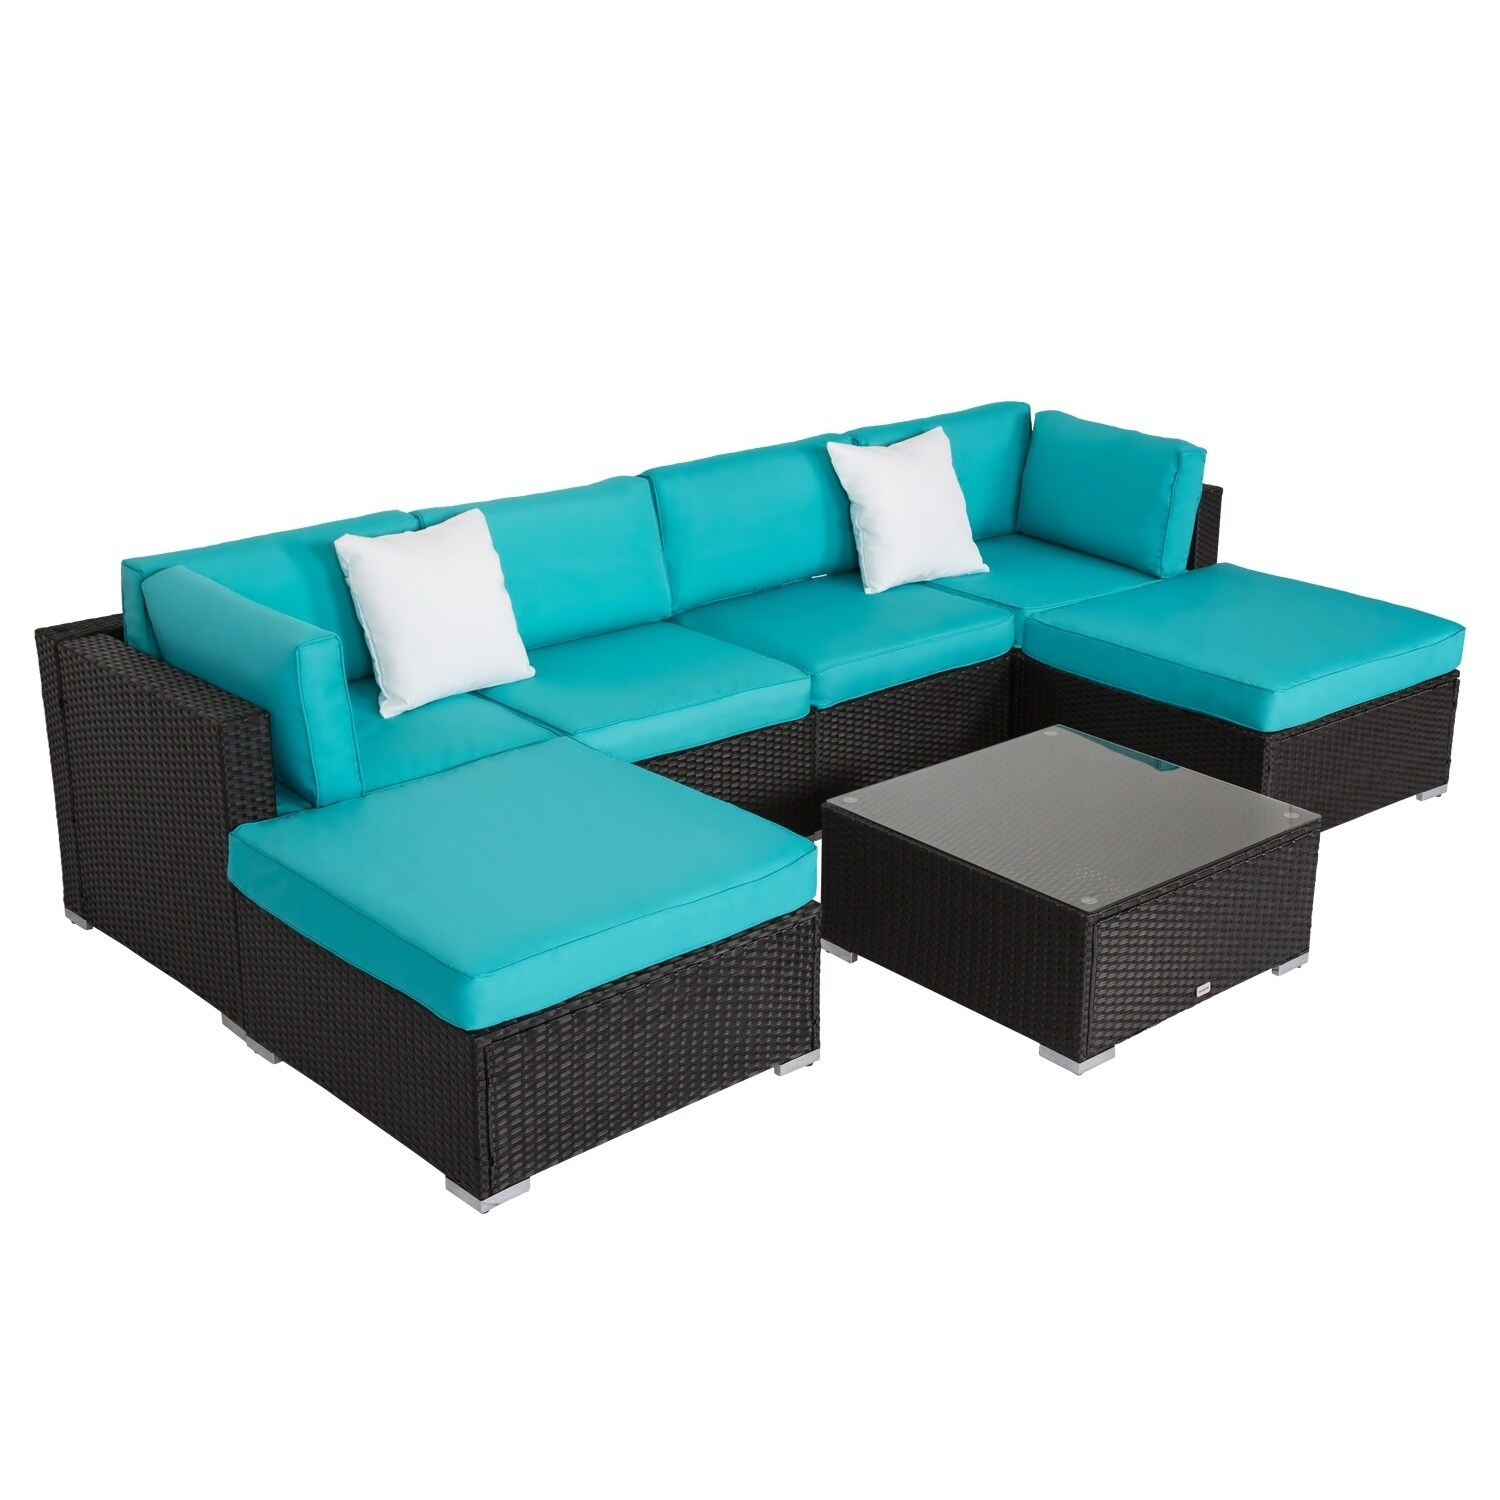 Kinbor 7 Pcs Outdoor Furniture Cushioned Rattan Wicker Sofa All Weather Patio Sectional Set